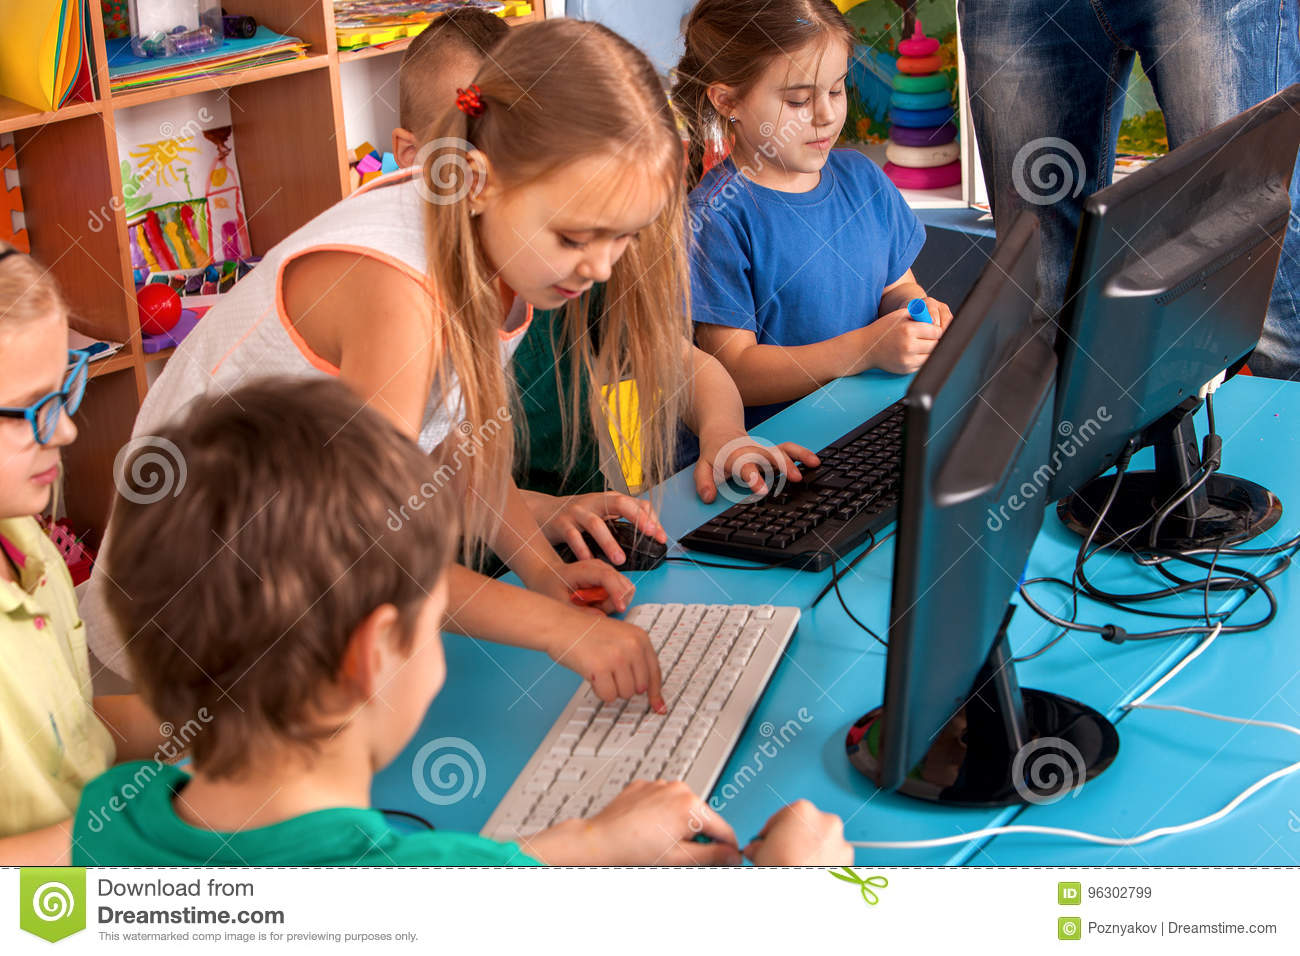 Download Children Computer Class Us For Education And Video Game. Stock Image - Image of club, hours: 96302799